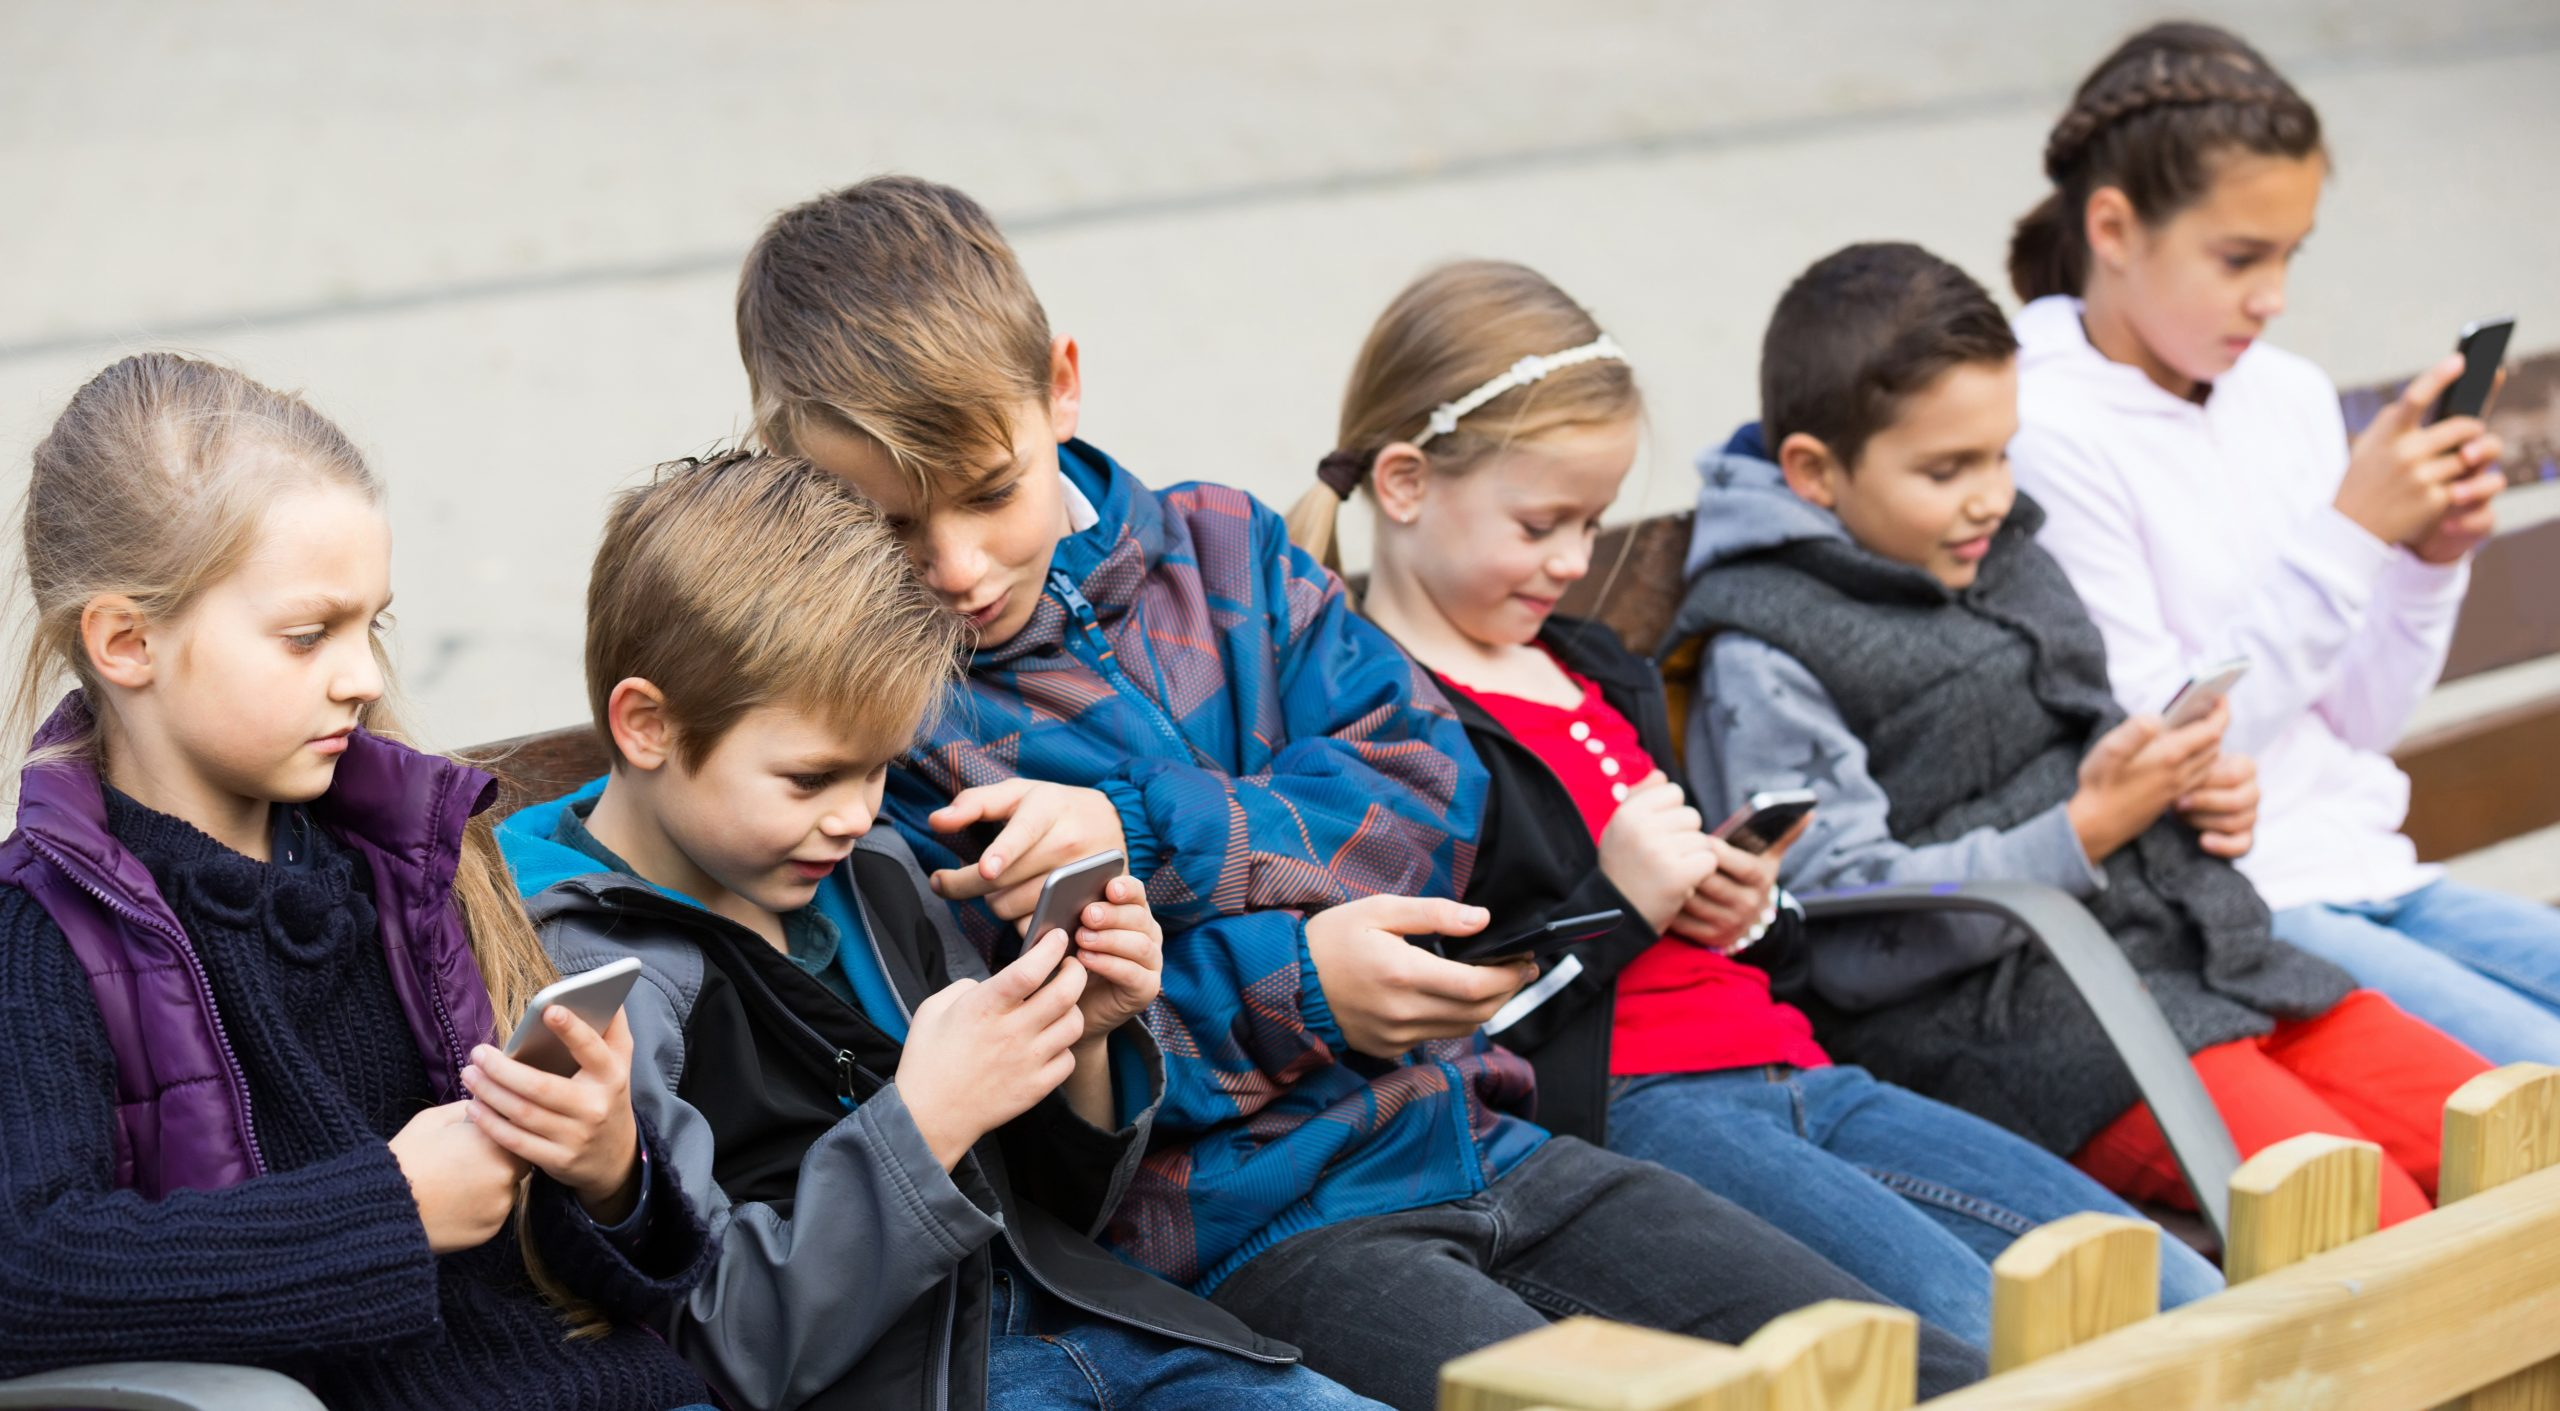 Kids and phones: a cause of mental health problems or a storm in a teacup?